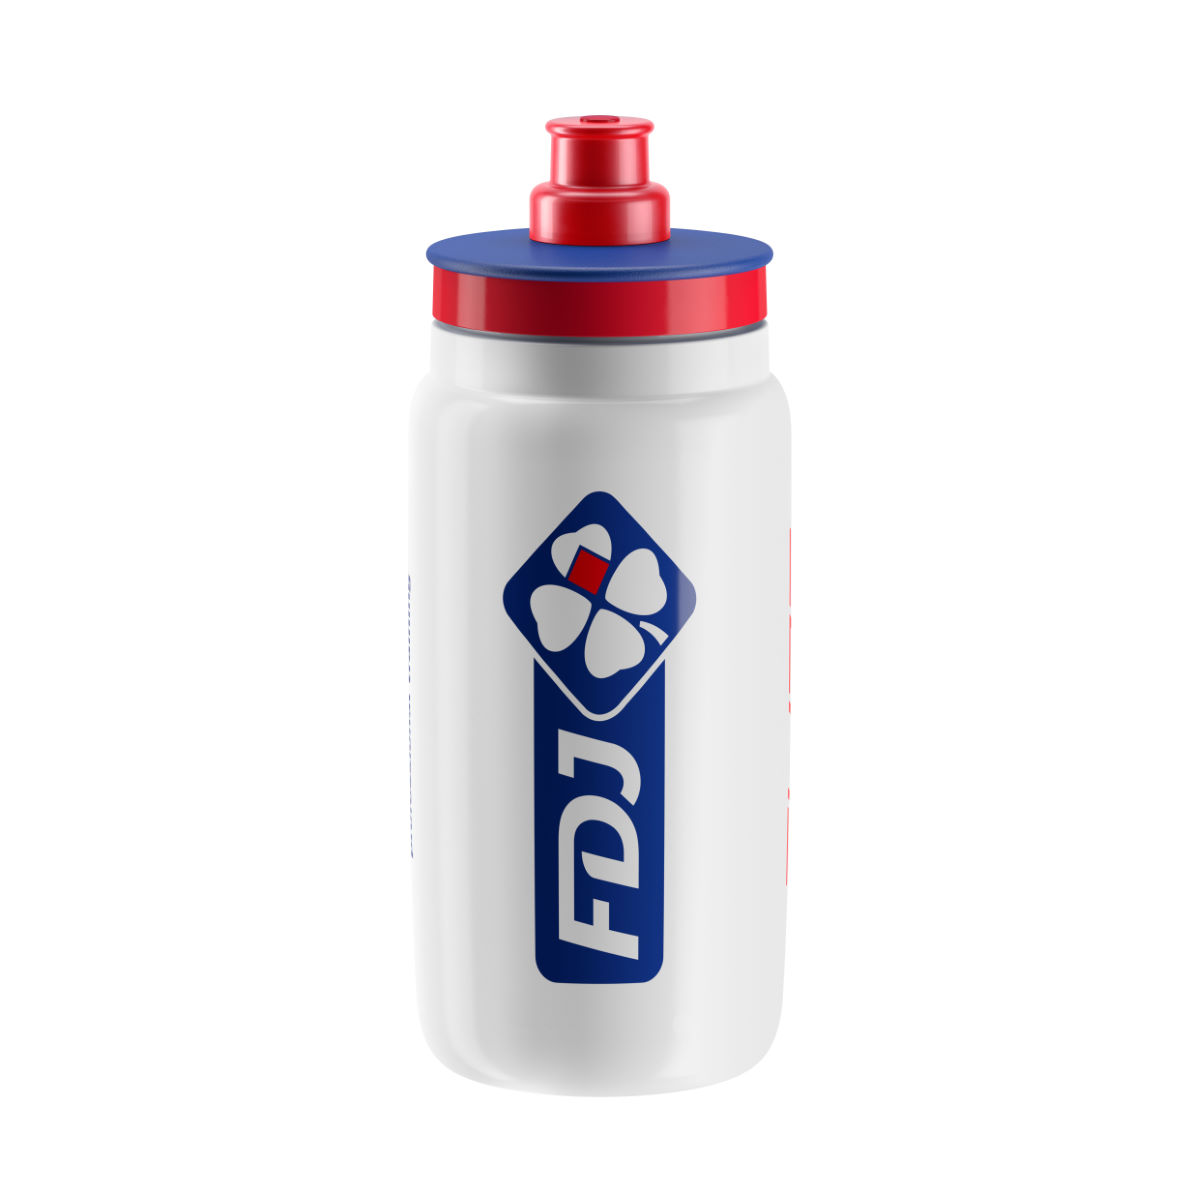 Elite Fly FDJ 2017 - One Size White/red/blue Bidons